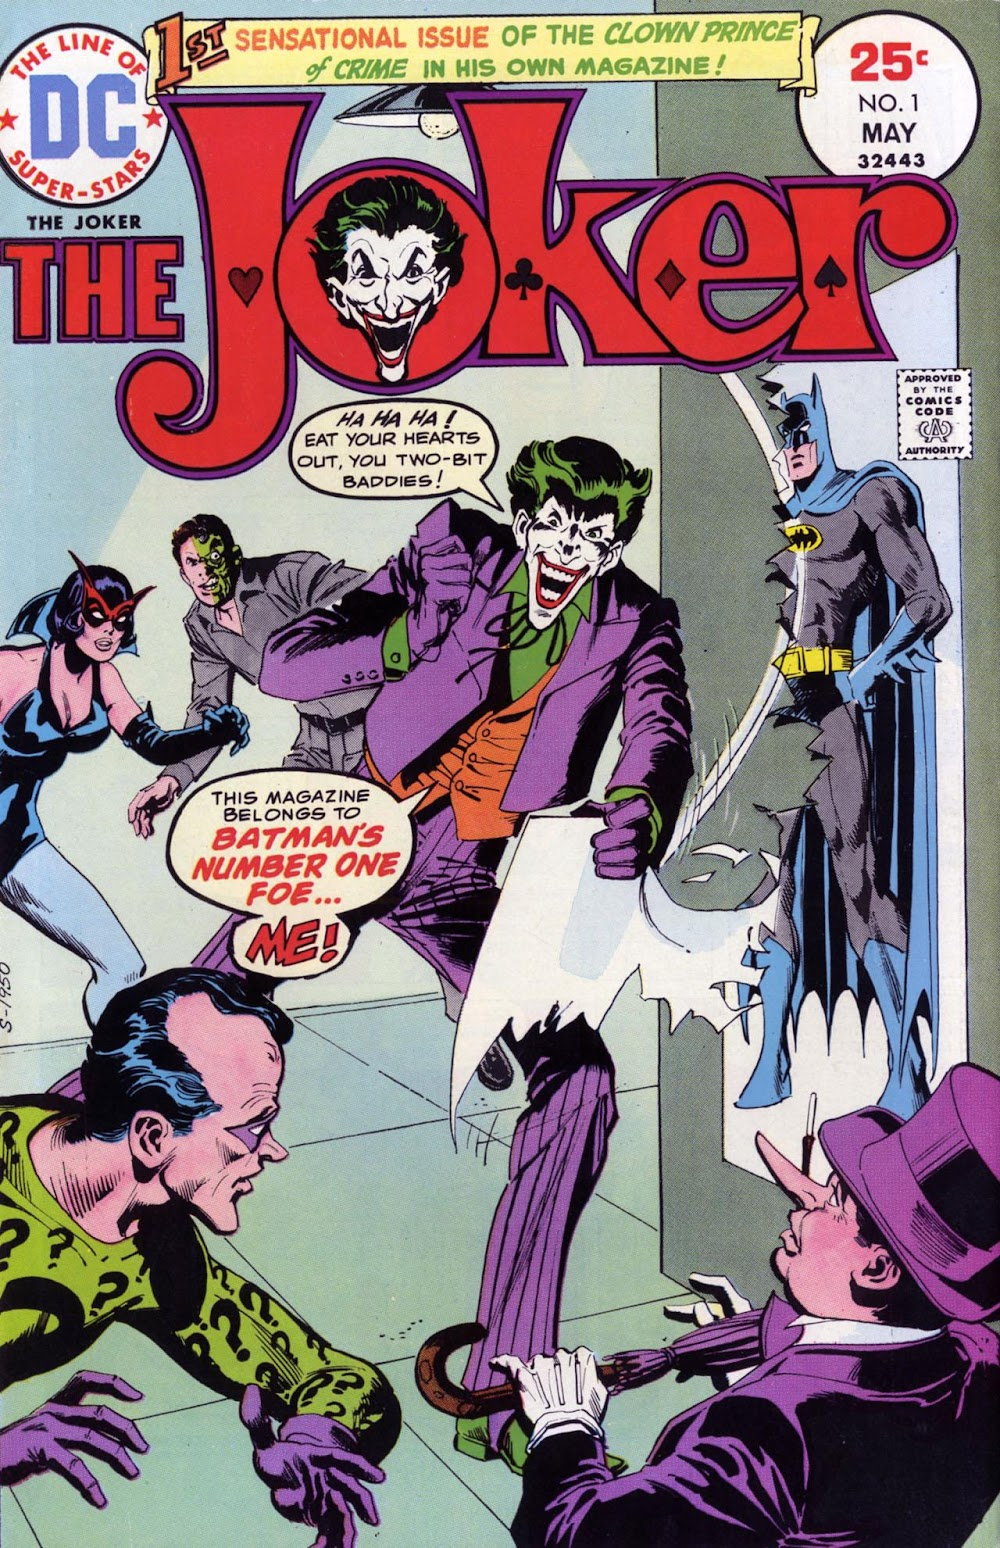 The Joker (1975) - complete